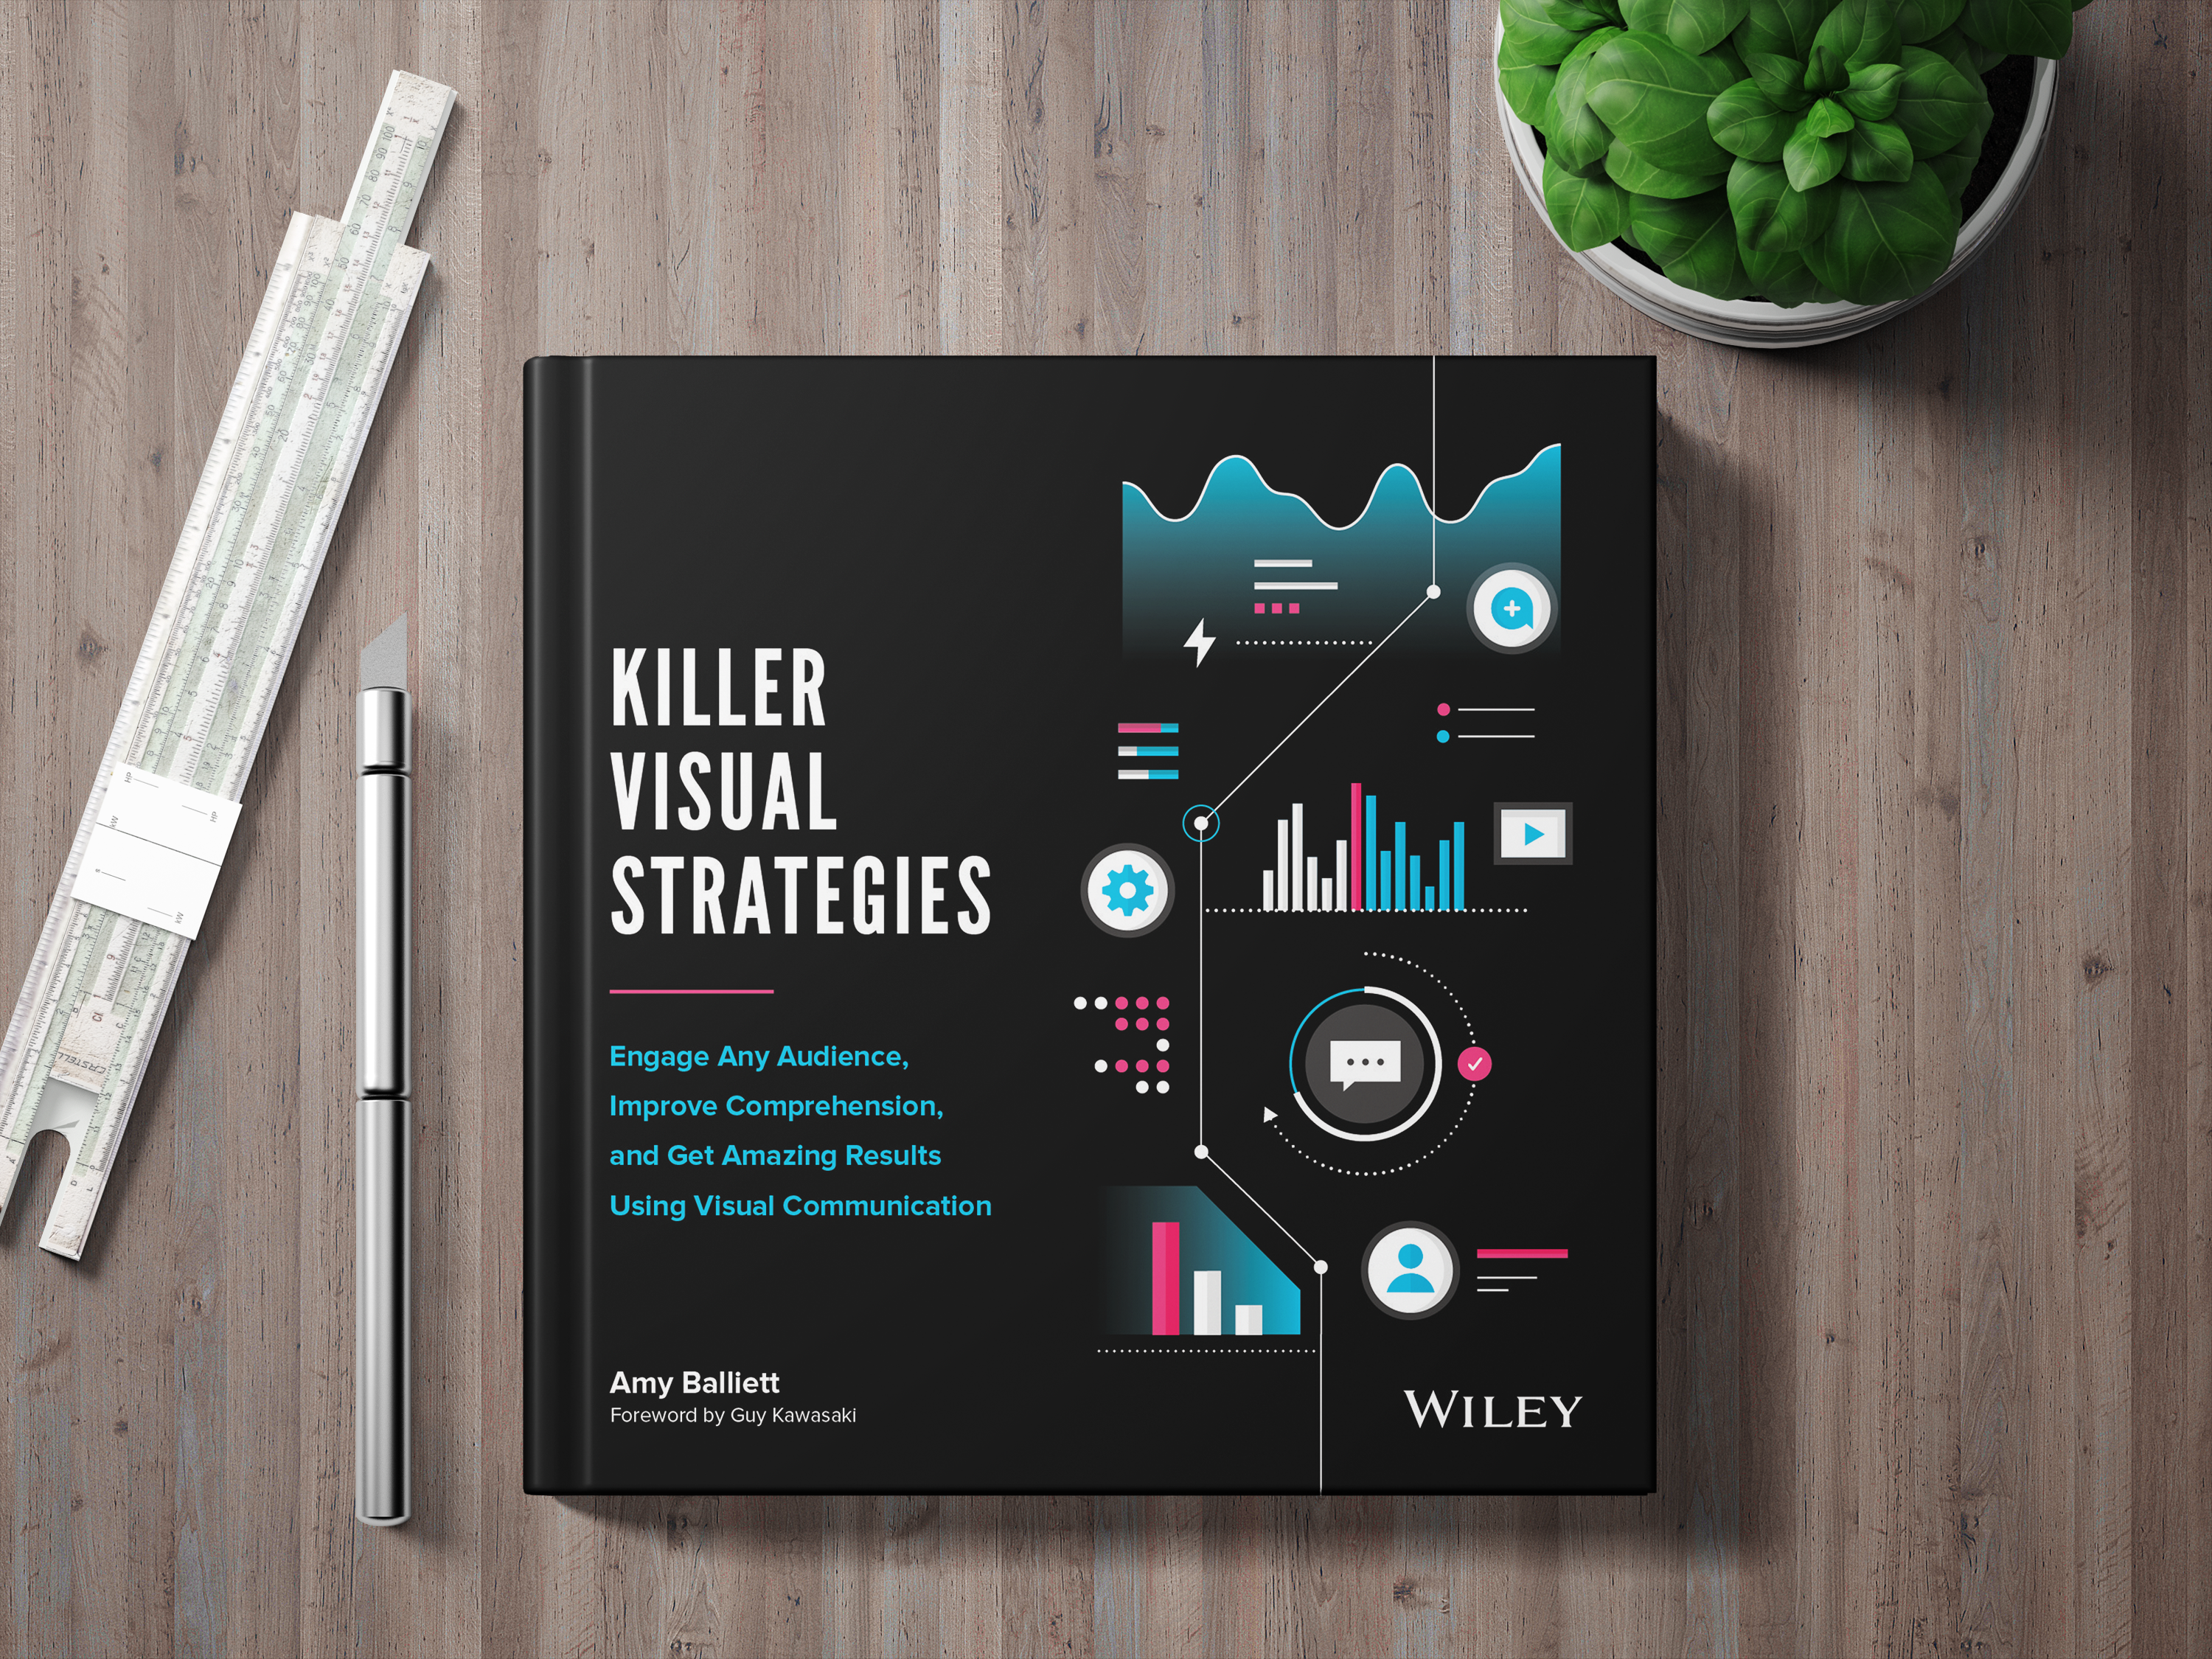 Killer Visual Strategies book about visual communication sitting on a desk